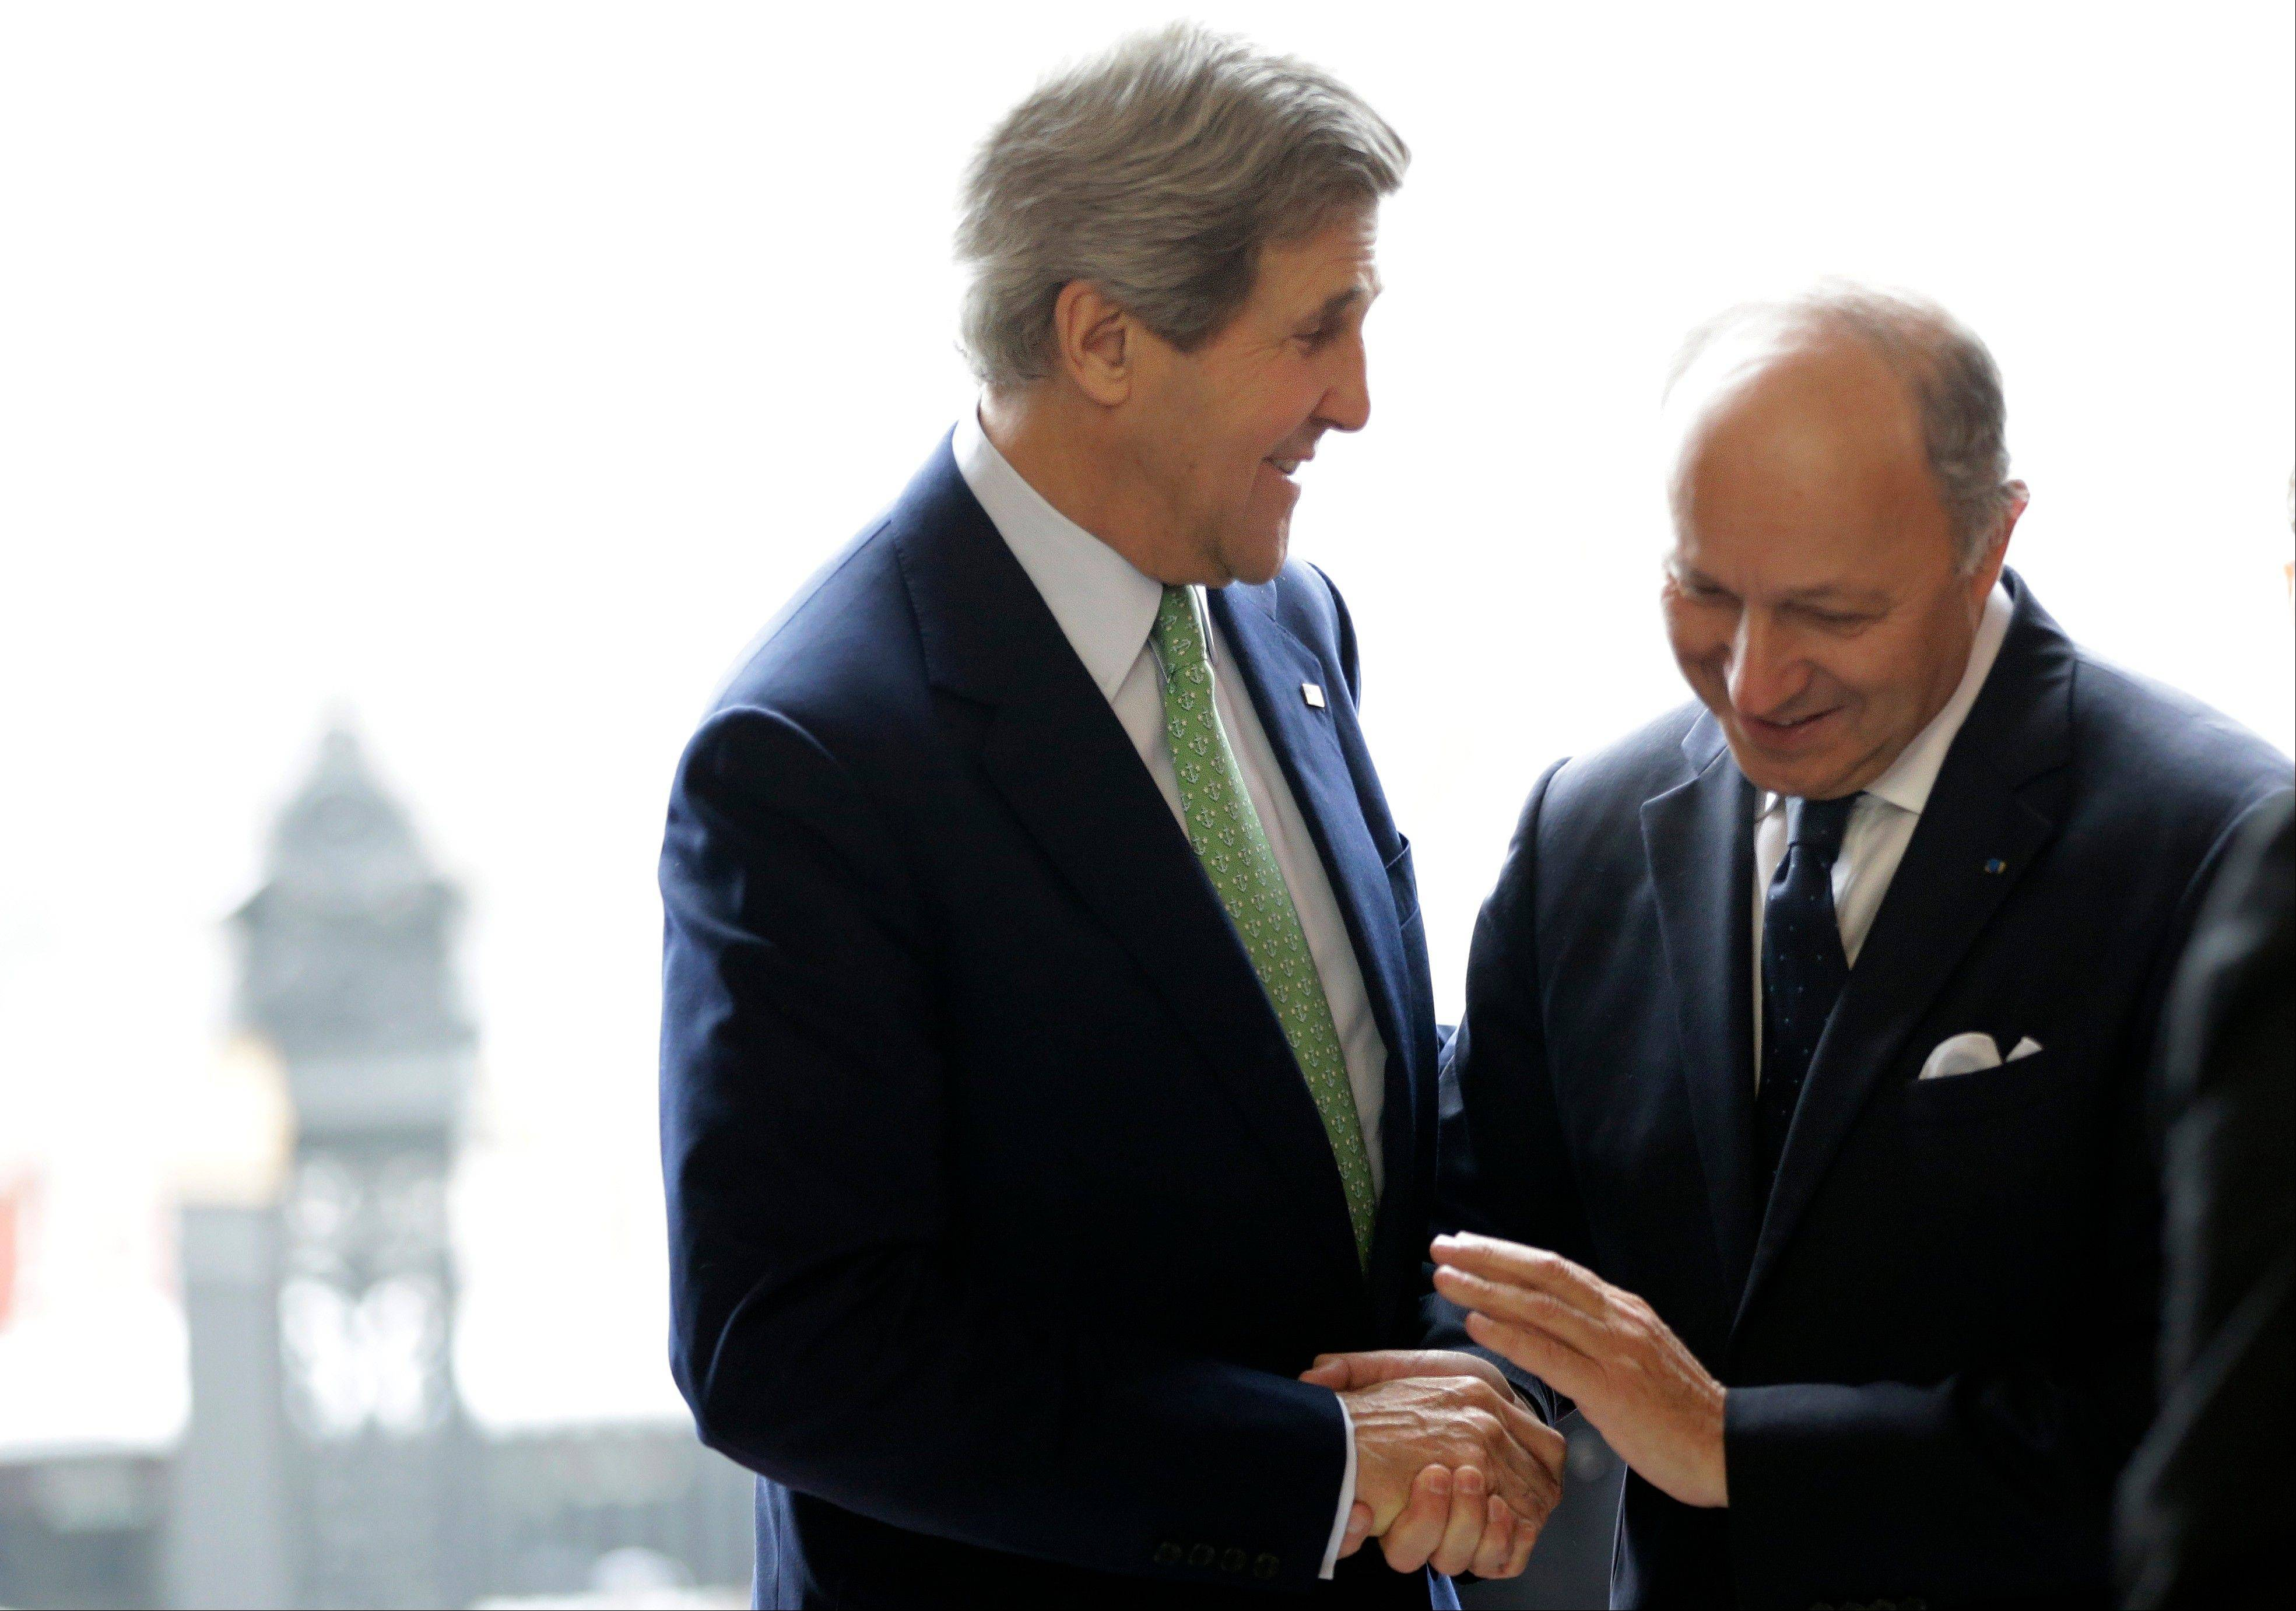 U.S. secretary of state John Kerry, left, is greeted Wednesday by French Minister of Foreign Affairs Laurent Fabius at the Foreign Ministry in Paris. Paris is the third leg of Kerry's first official overseas trip, a hectic nine-day dash through Europe and the Middle East.